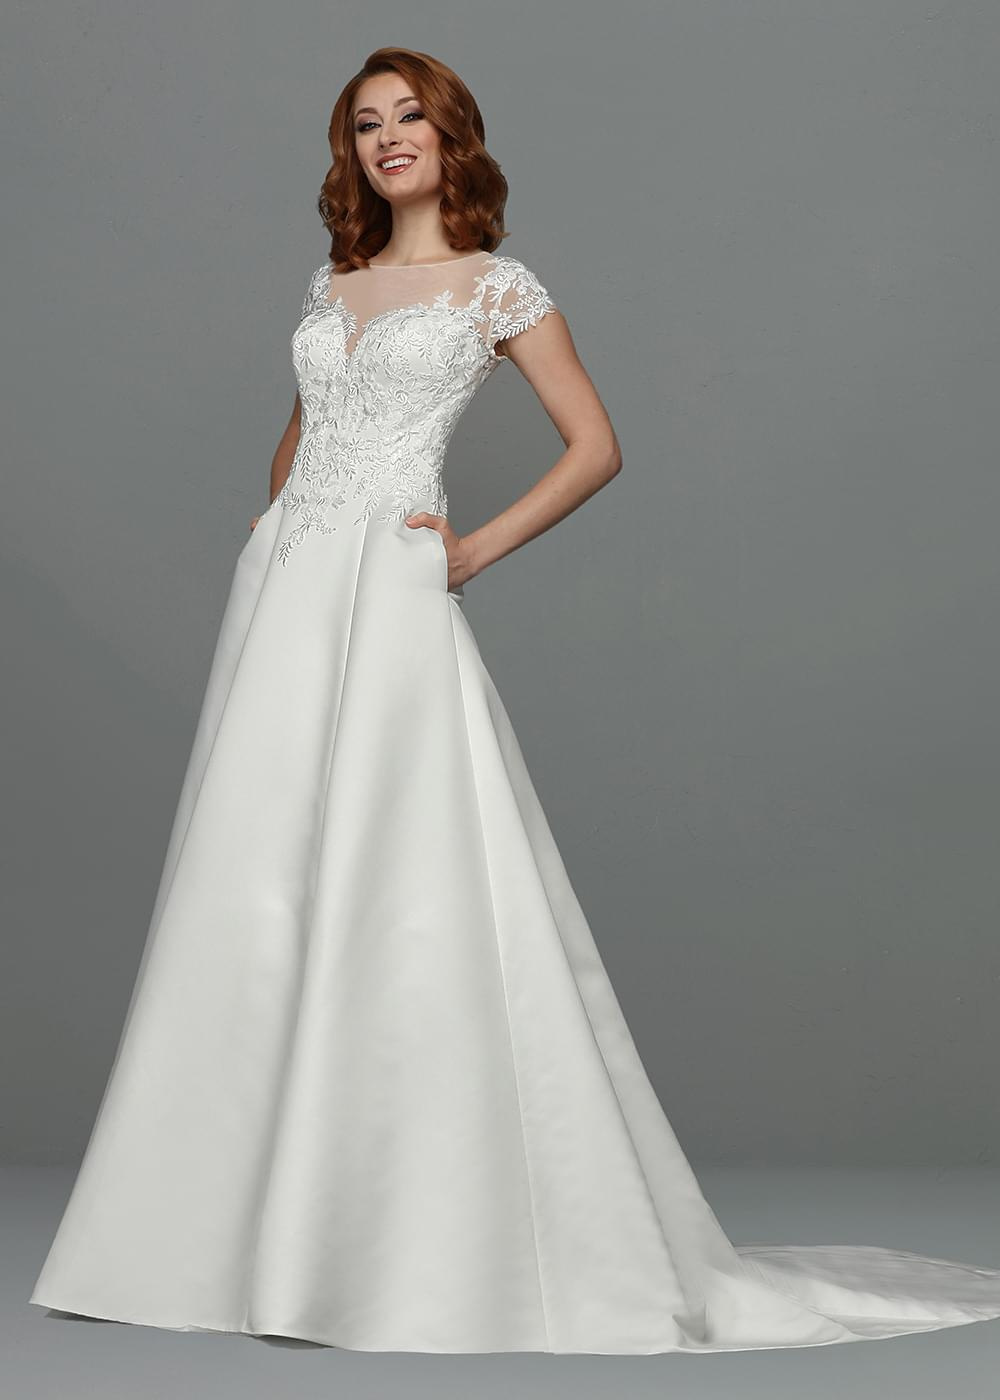 TH-Claire TH Wedding Dresses By Ashdon